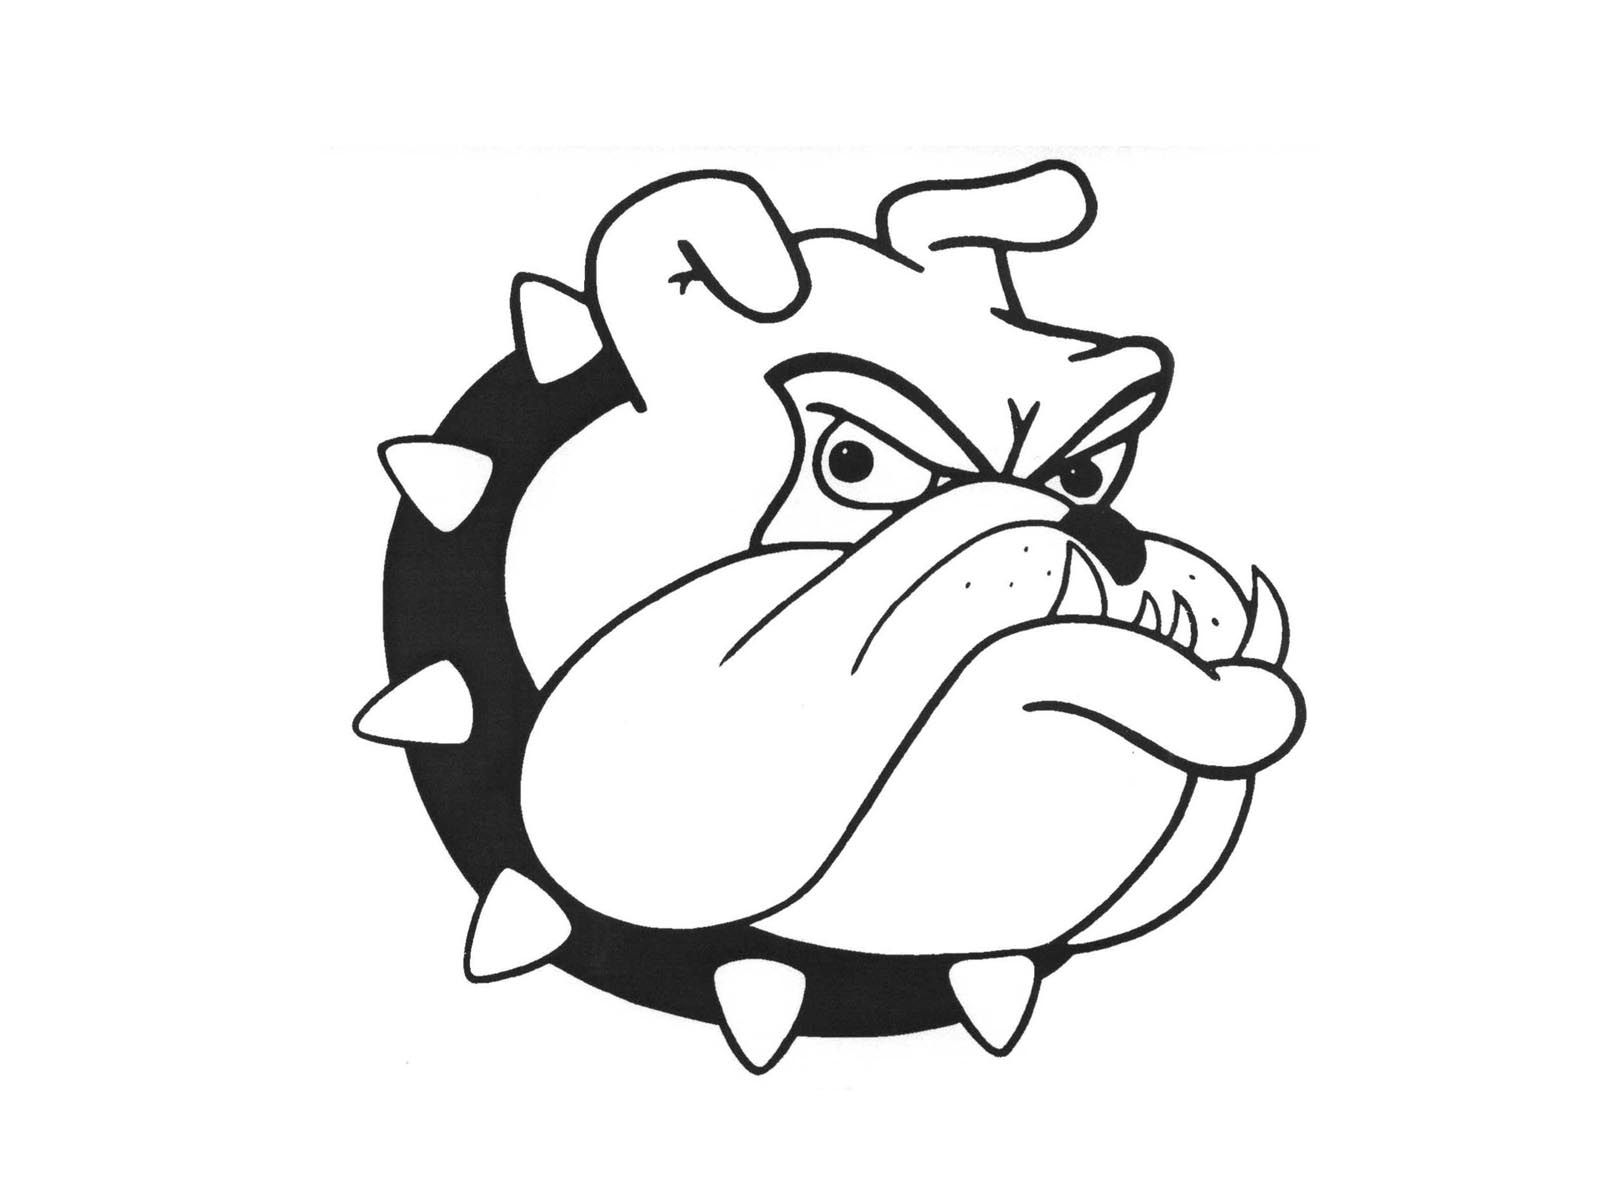 medium resolution of 14 cartoon bulldog images free cliparts that you can download to you